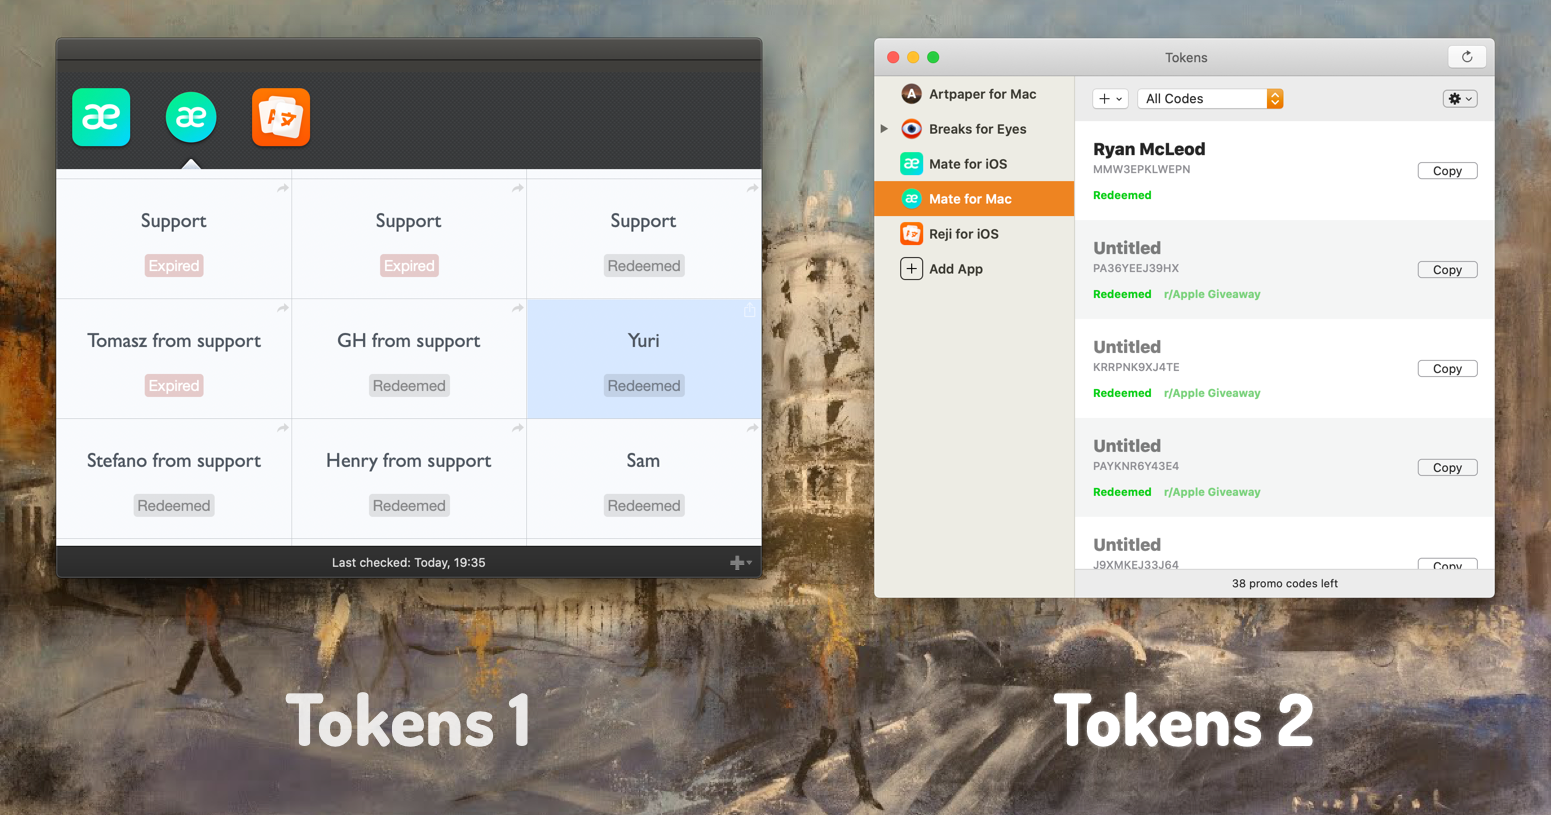 Tokens 1 side by side with Tokens 2.